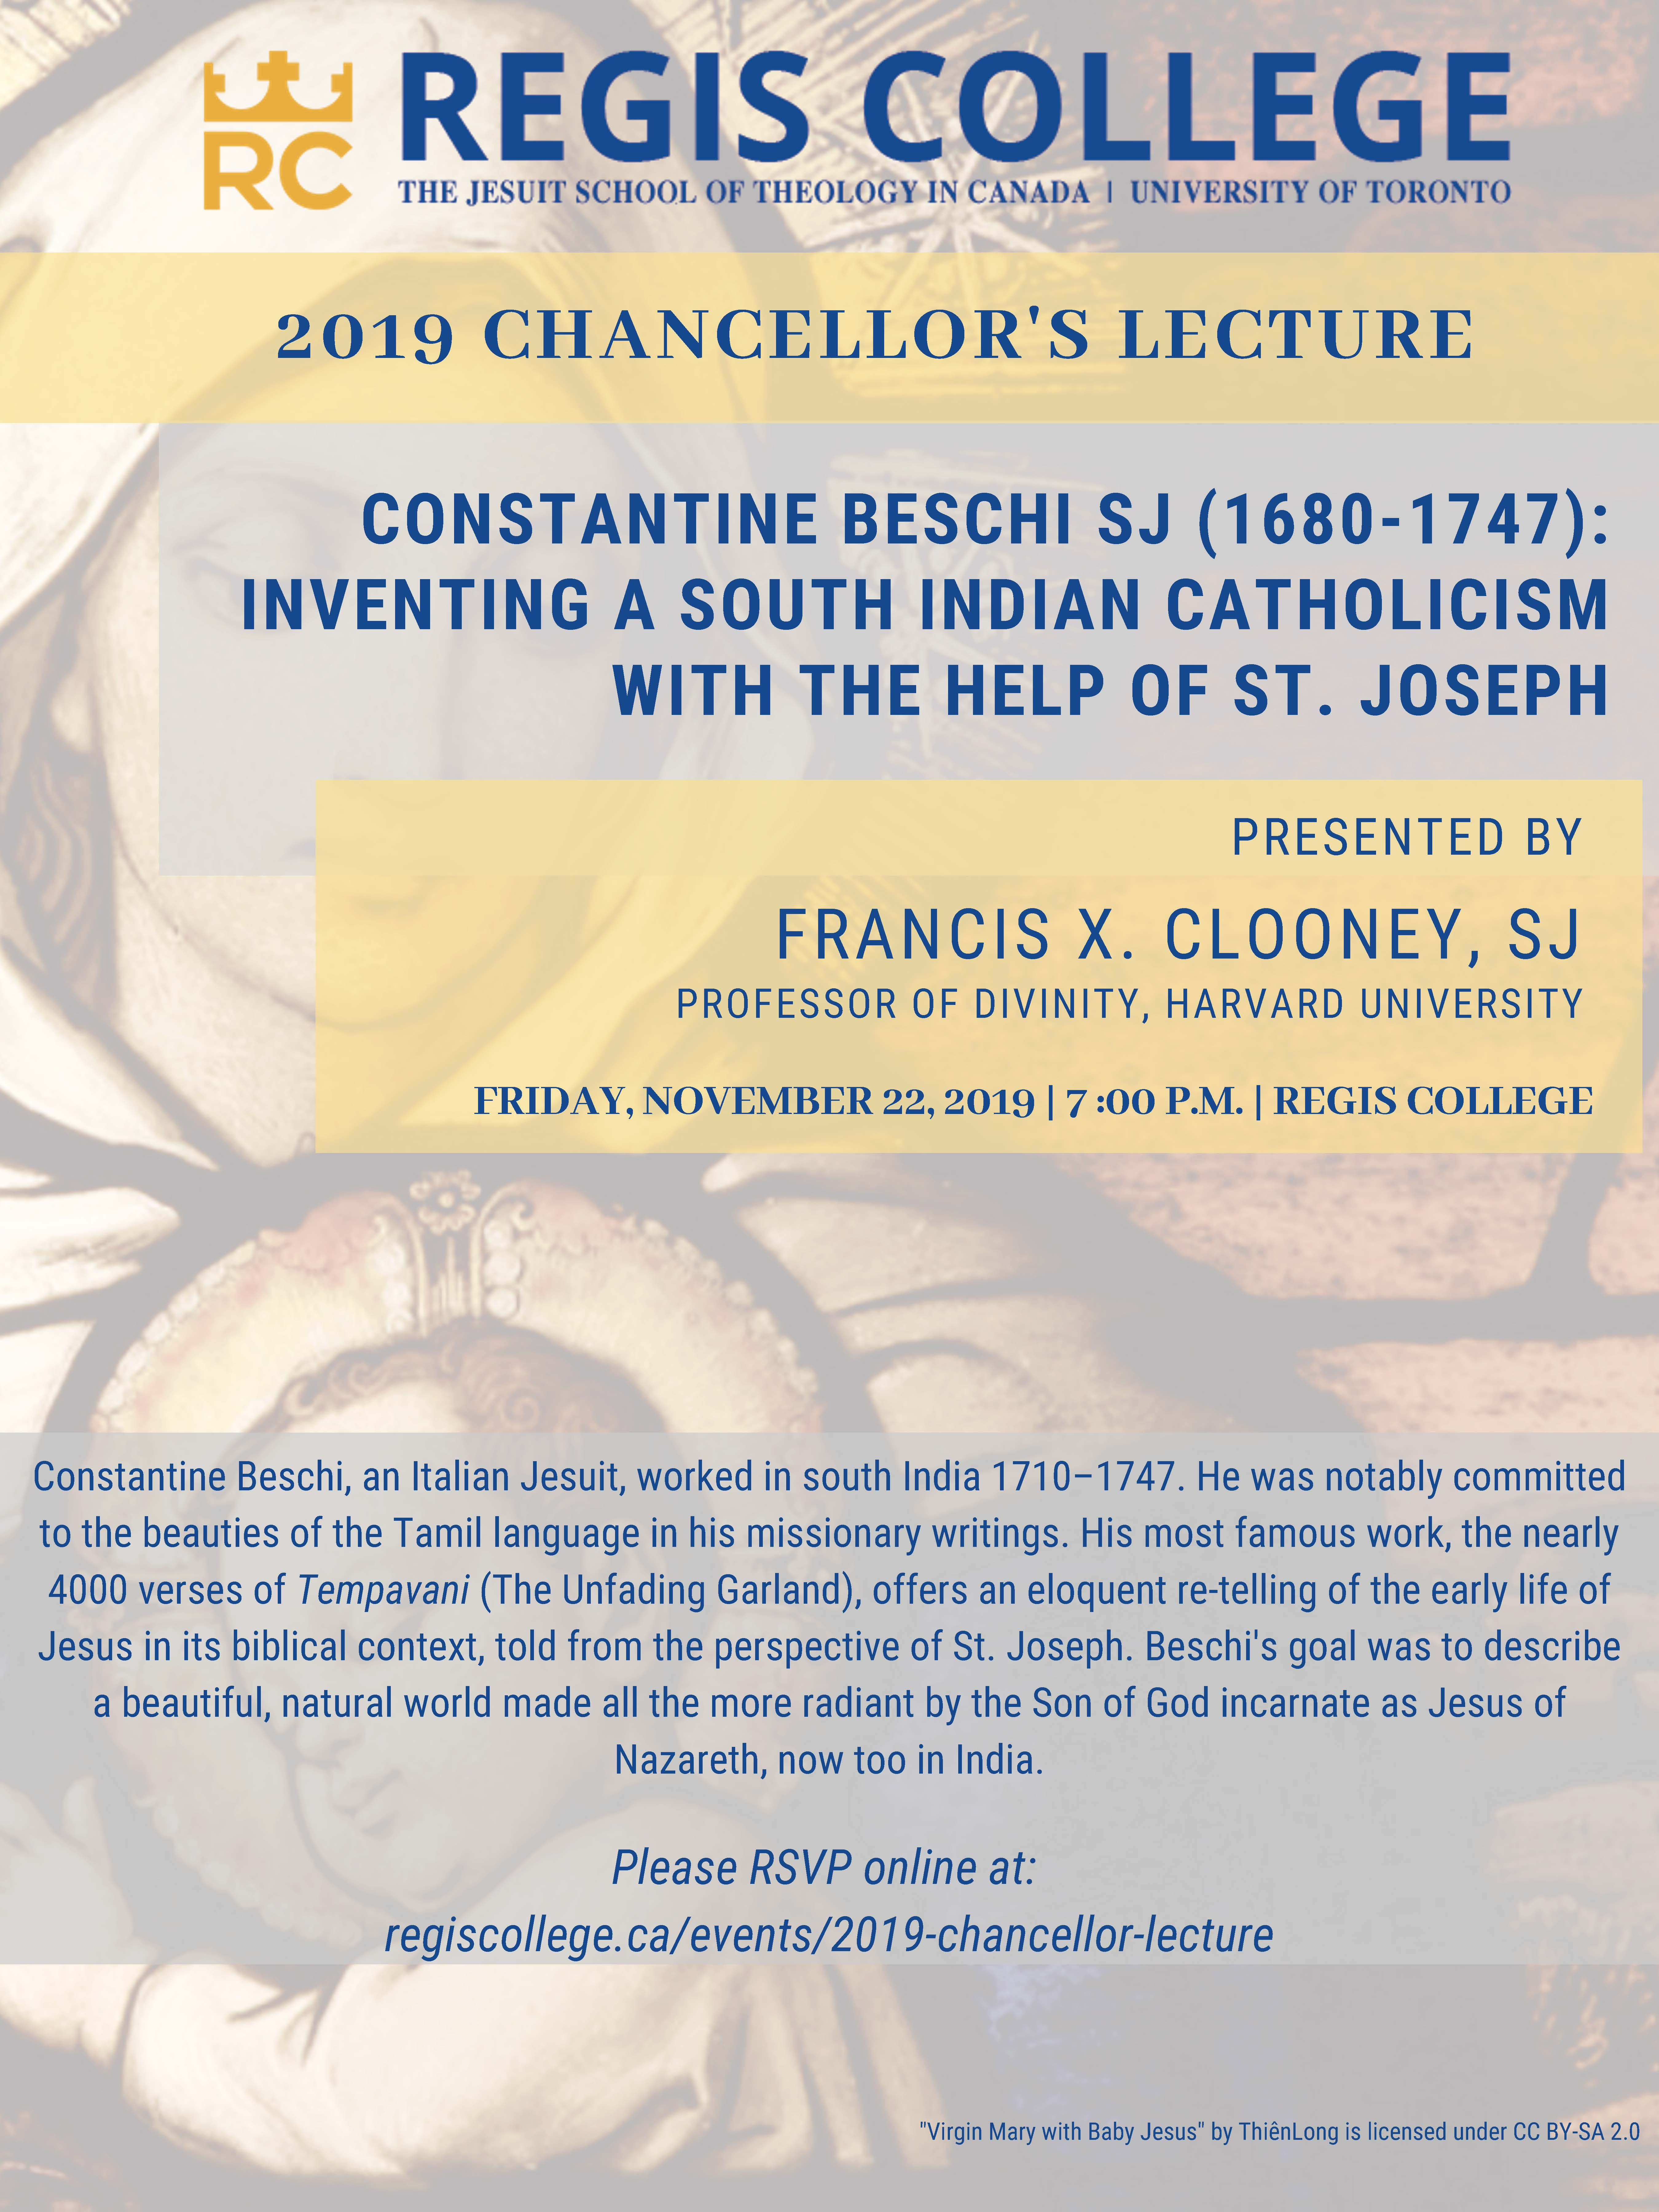 2019 Regis College Chancellor's Lecture with Fr. Francis X. Clooney, SJ